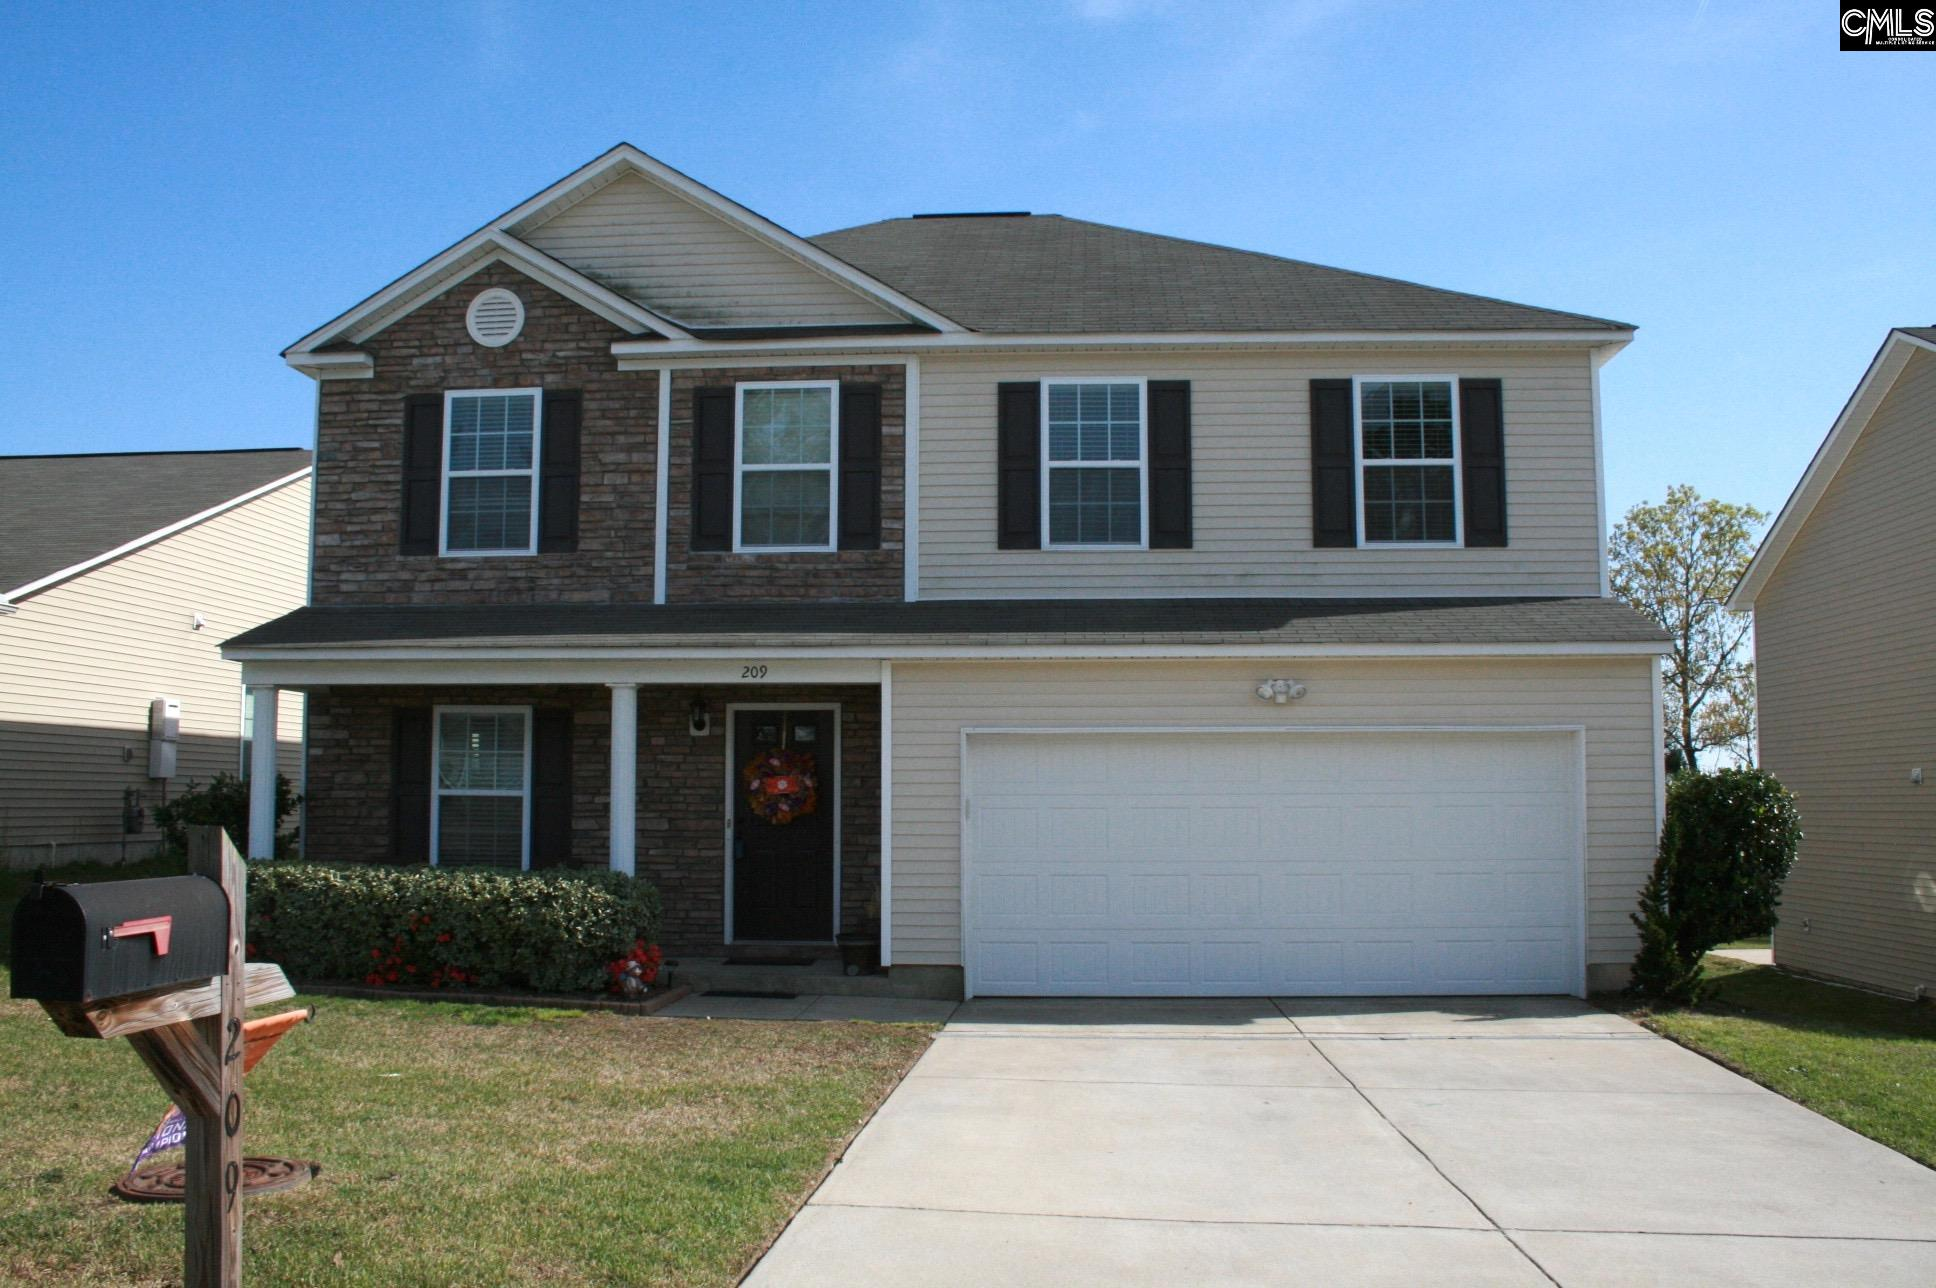 209 Mariscat Lexington, SC 29073-6803